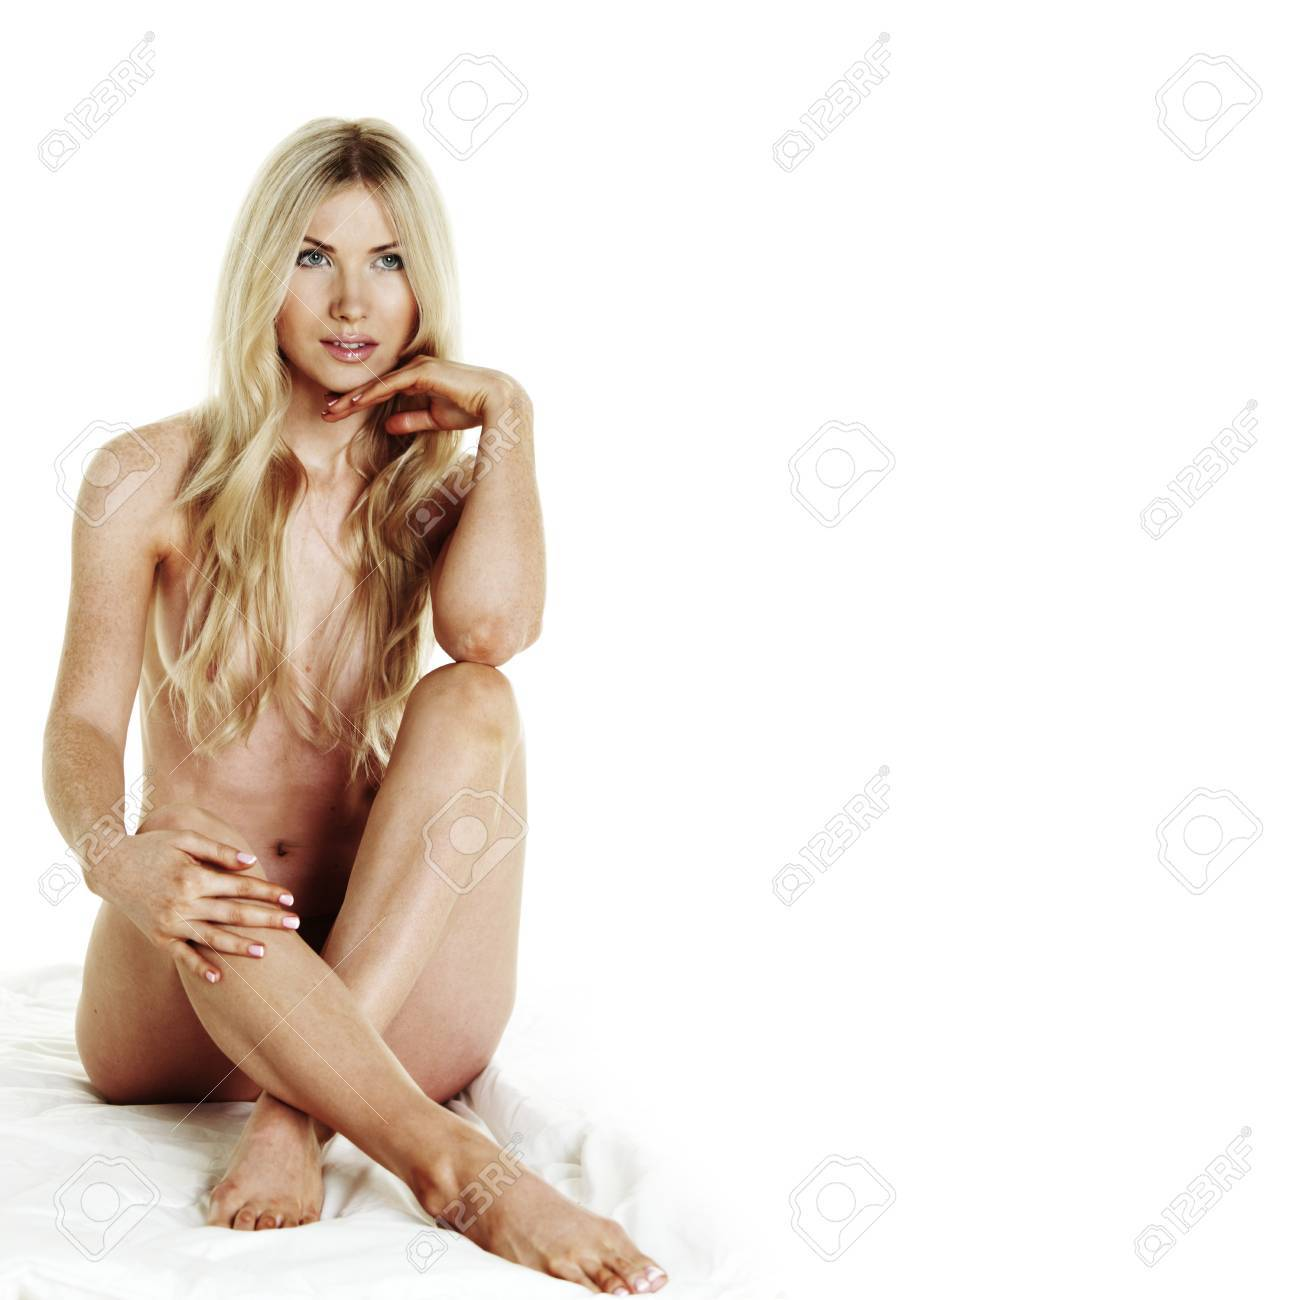 nude woman isolated on white Stock Photo - 11340219